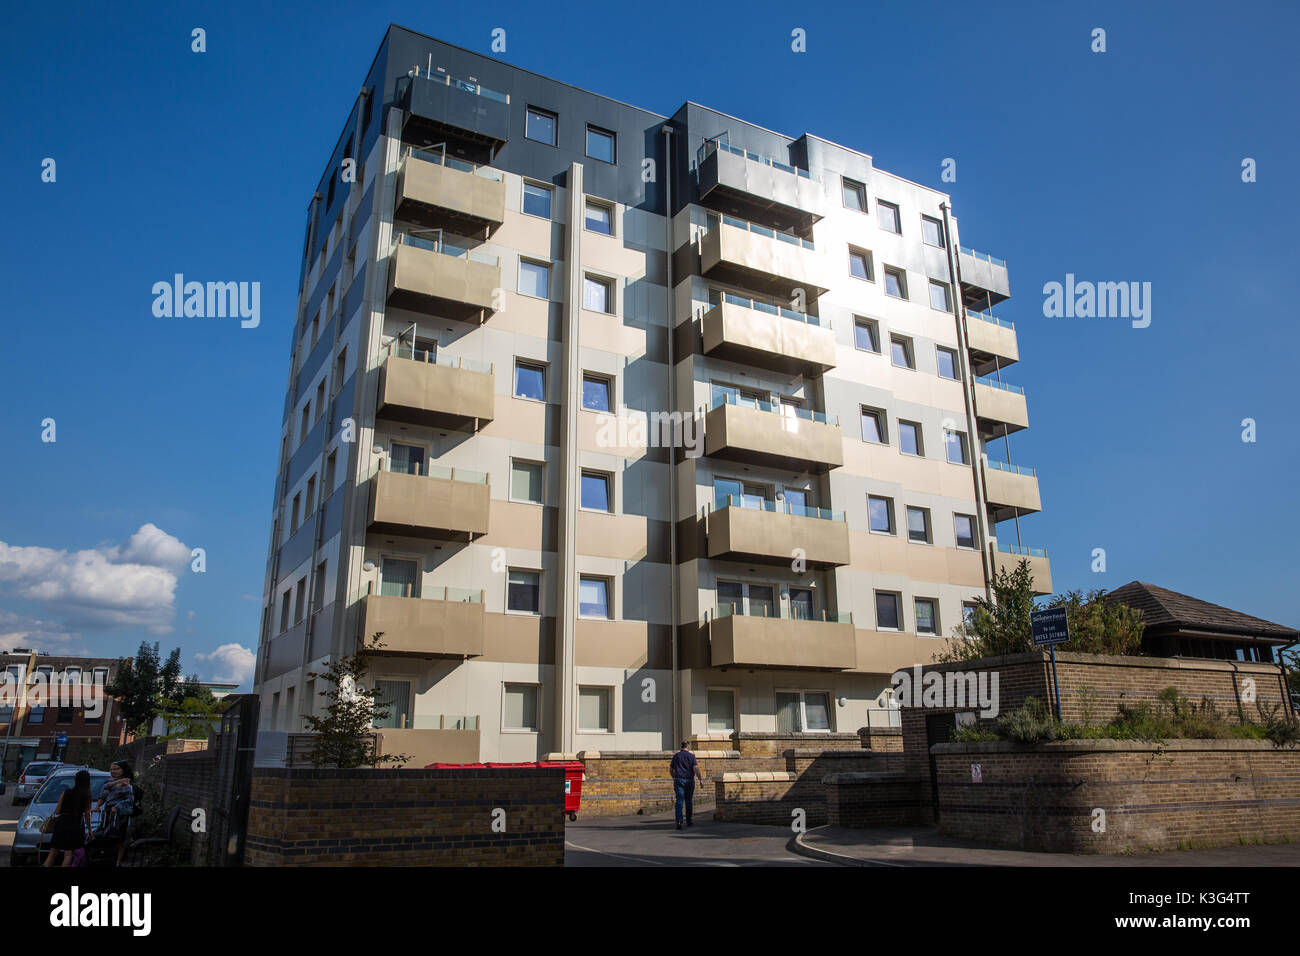 Slough, UK. 2nd September, 2017.  Cladding on Nova House, a privately-owned 7-storey tower block, which failed a sampling safety test carried out in June following the Grenfell Tower fire will be replaced according to an announcement made on behalf of freeholder Ground Rent Estates 5 Ltd by director Darren Pither. Credit: Mark Kerrison/Alamy Live News - Stock Image